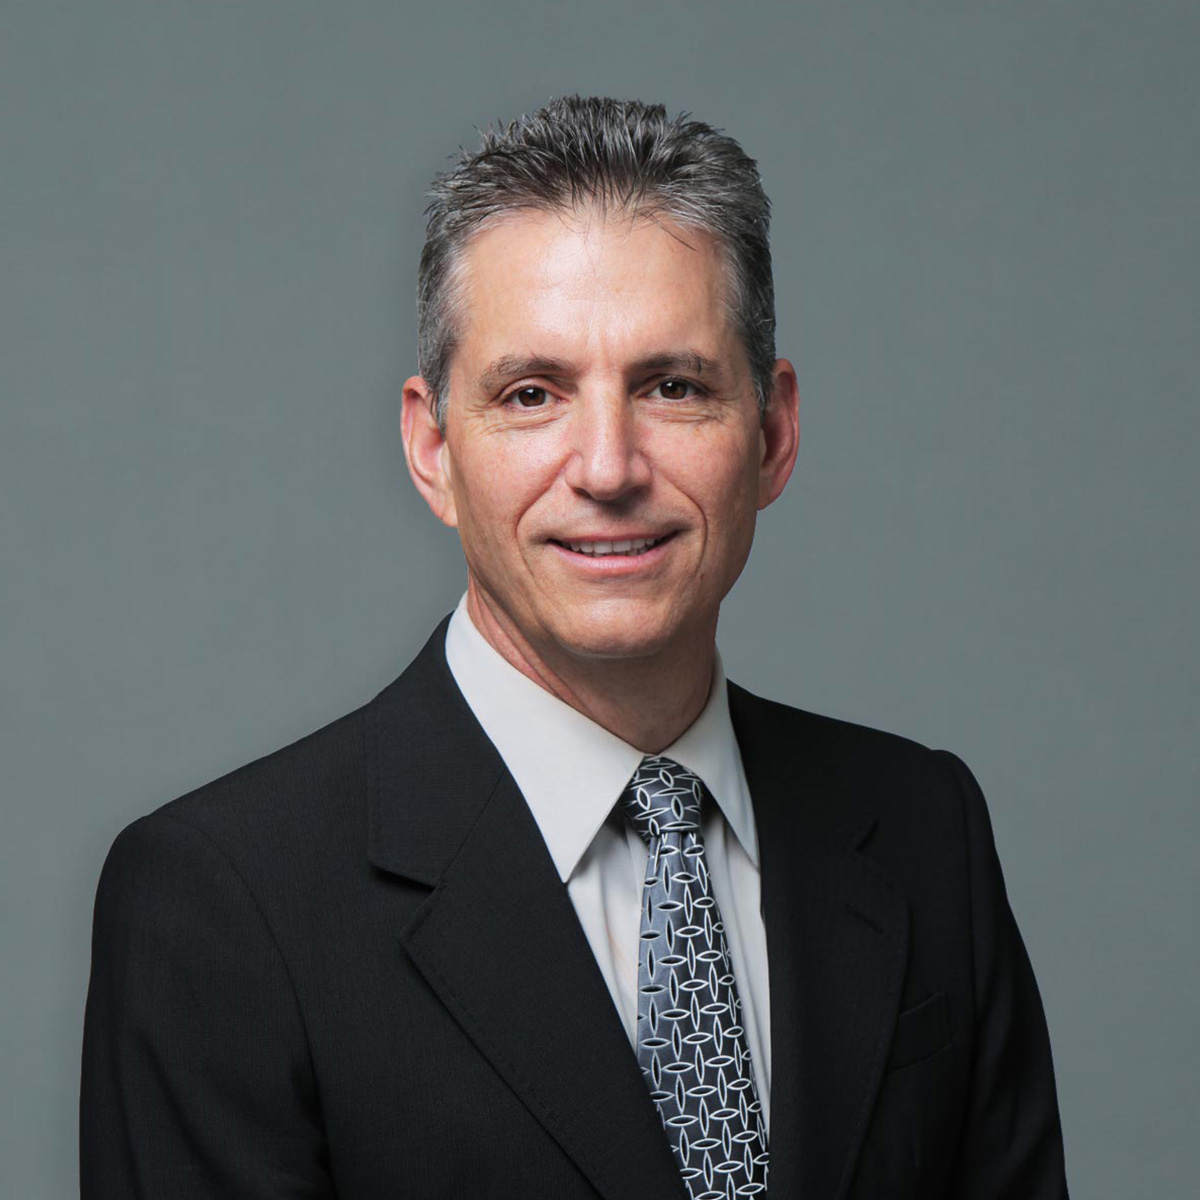 James A. Grifo,MD, PhD. Reproductive Endocrinology and Infertility, Gynecology